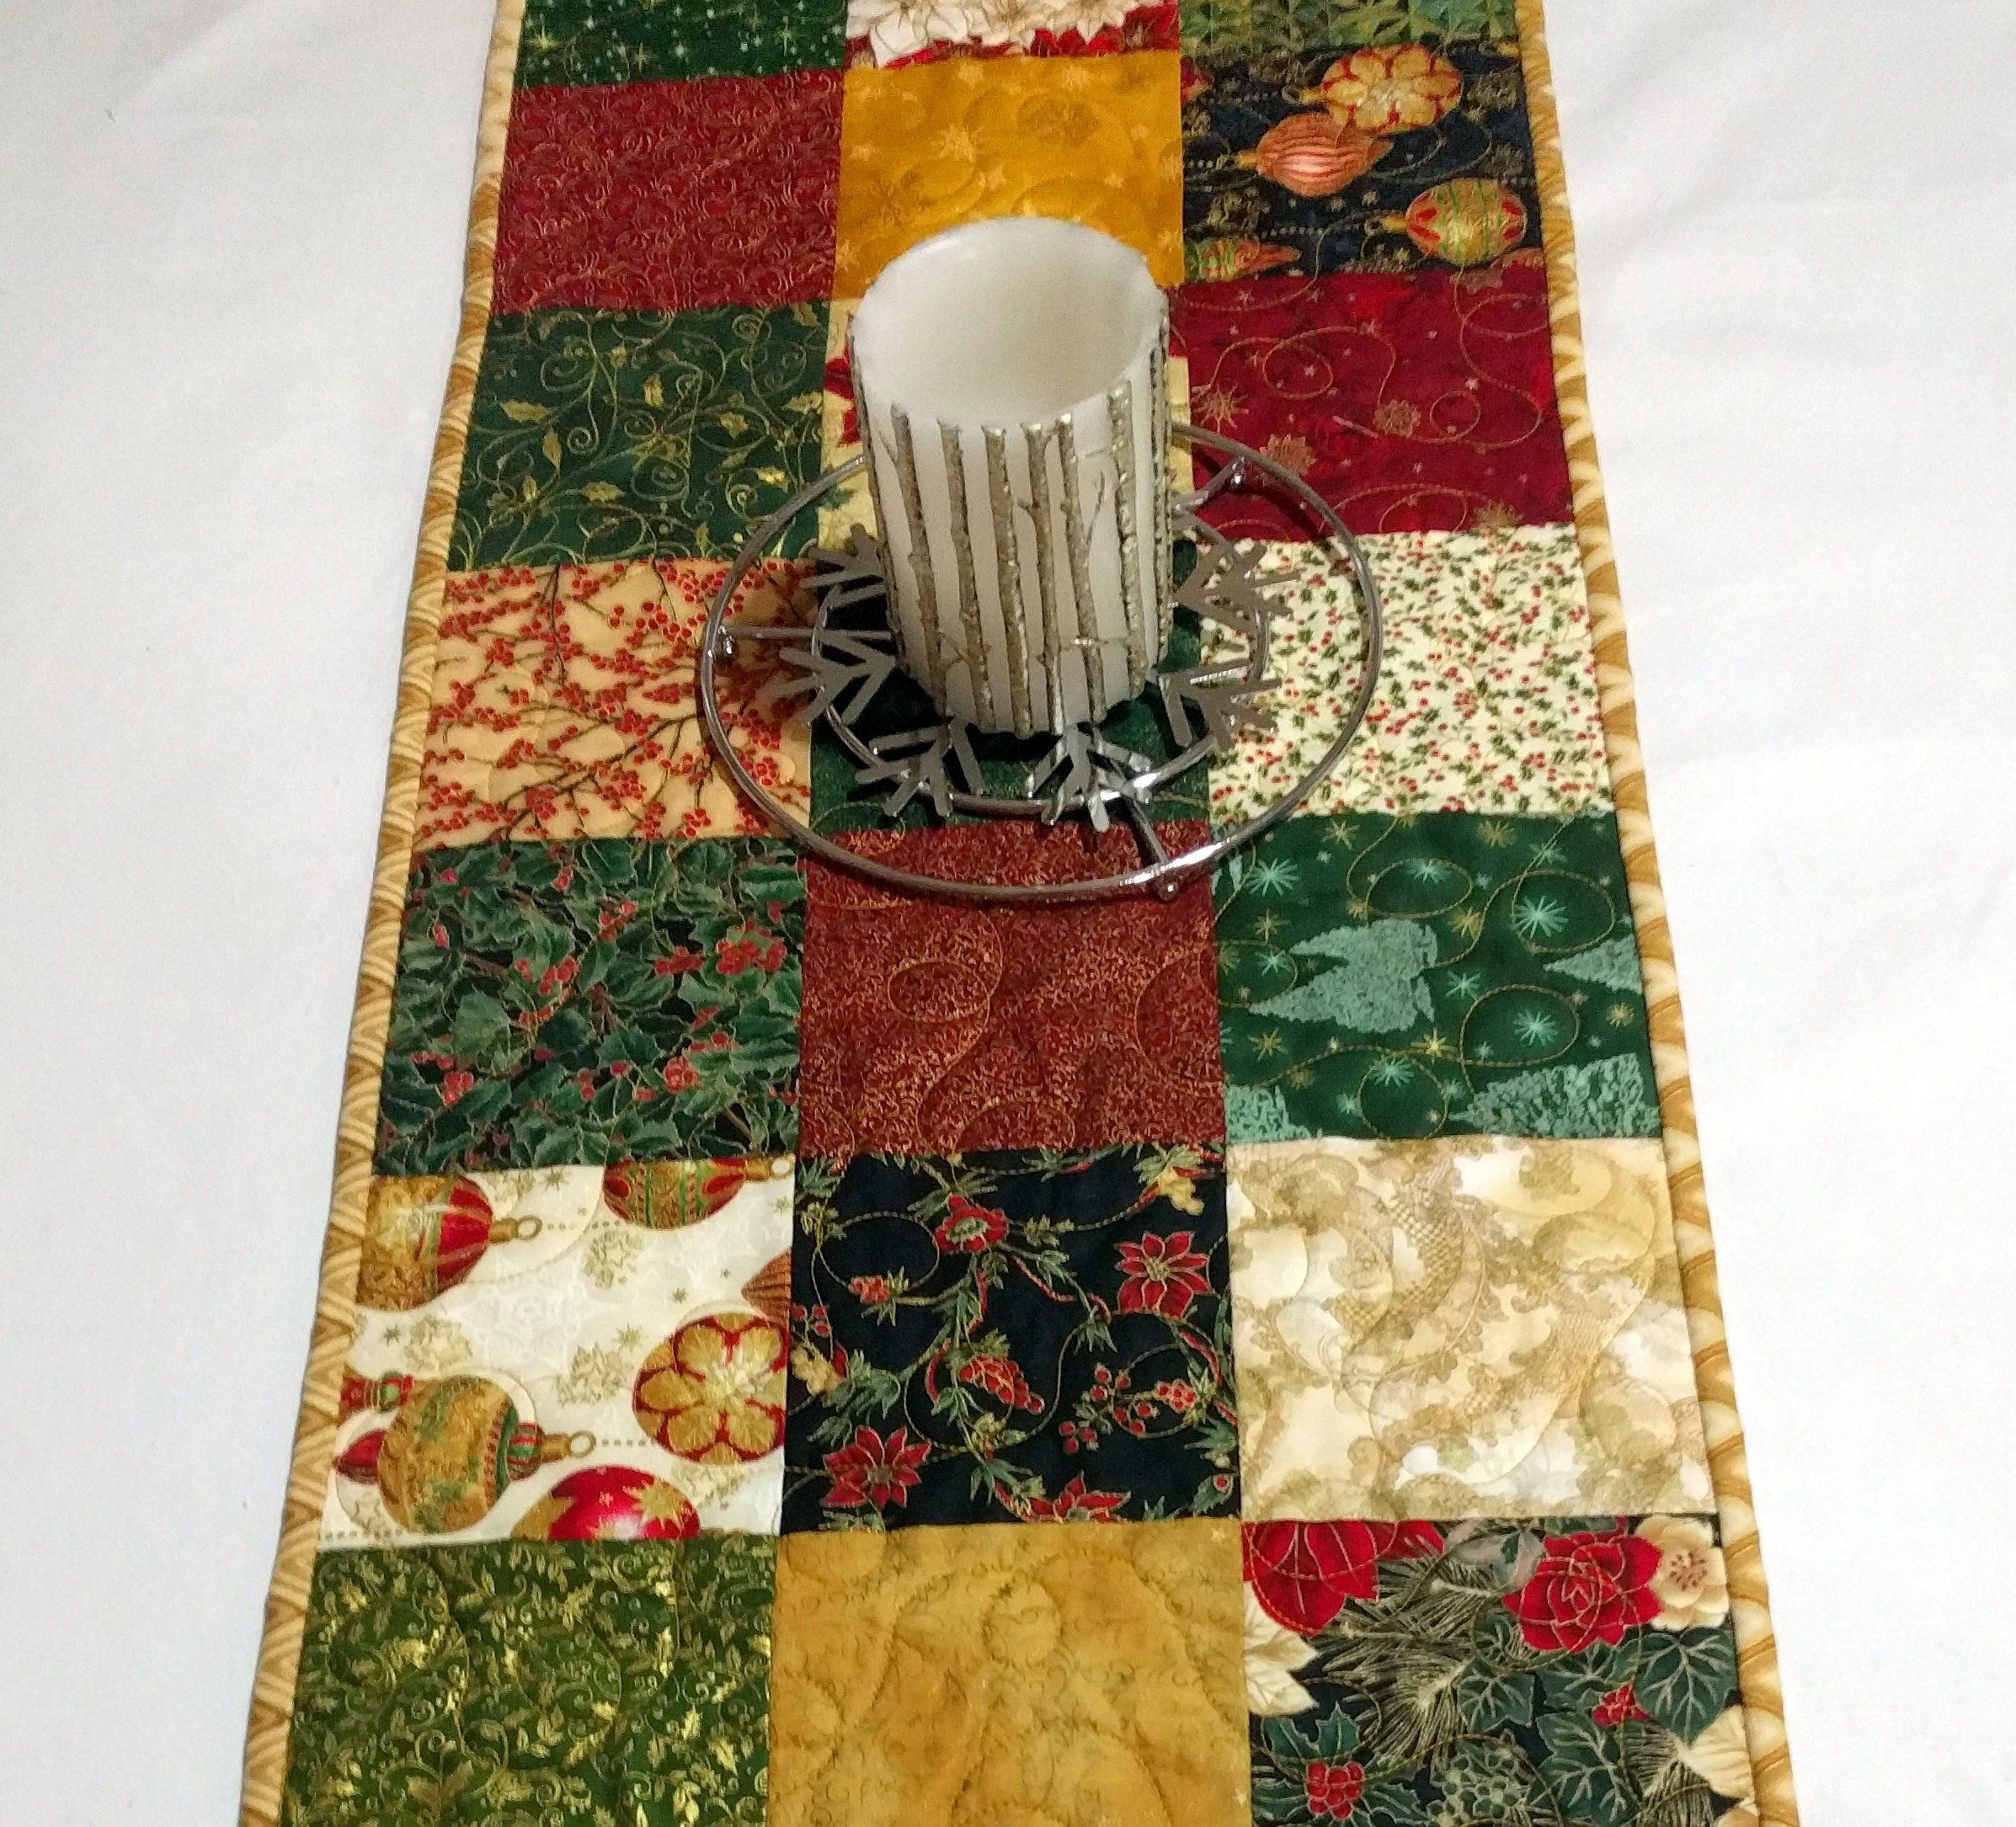 Gold Metallic Christmas Quilted Table Runner Red Gold Christmas Quilt Wedding Gift Elegant Quilt Decor H Metallic Christmas Red Gold Christmas Quilts Decor